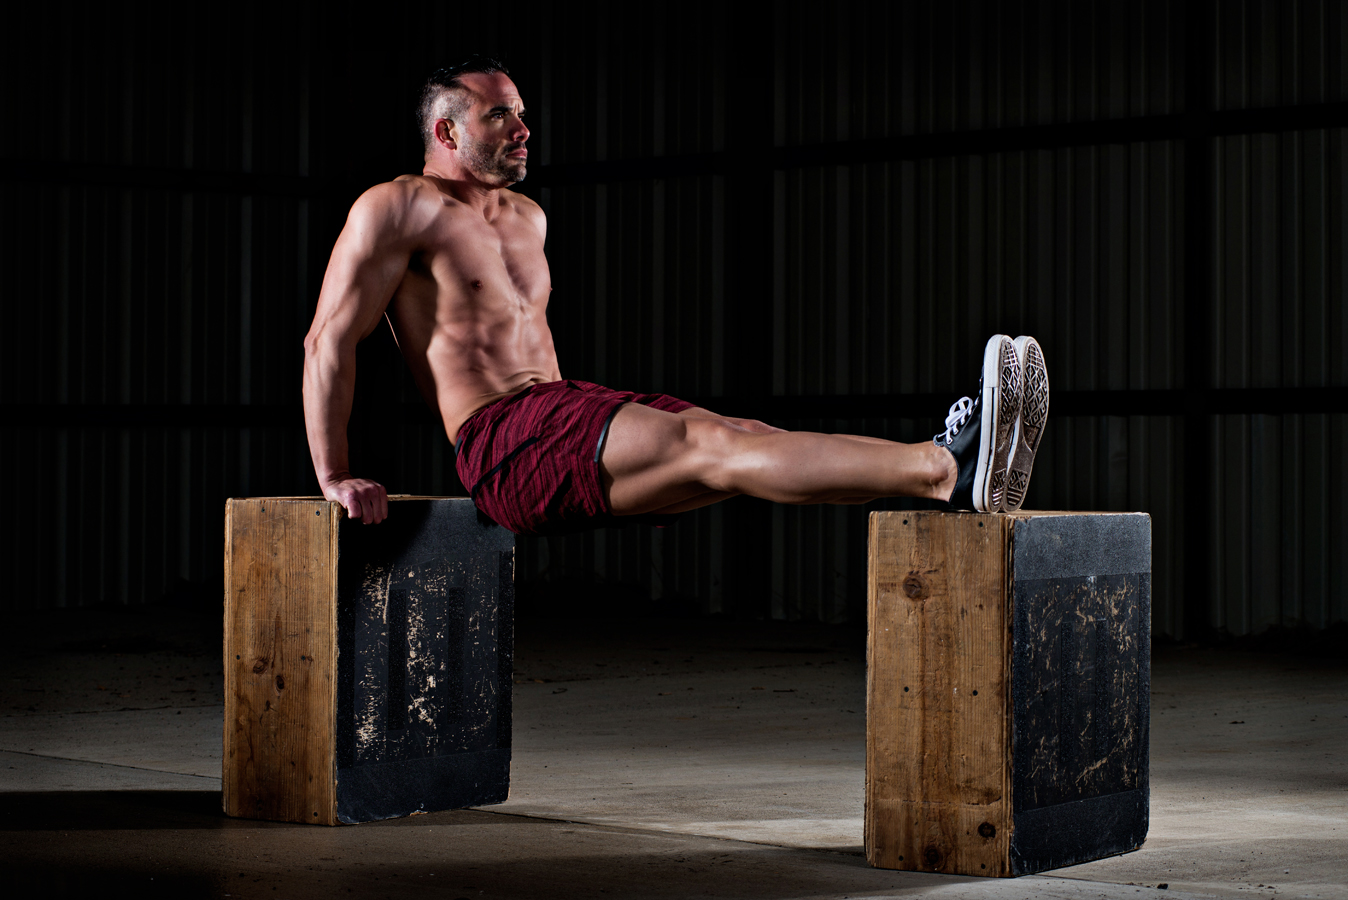 Male fitness model using boxes to do dips.  Fit man working out.  Kenneth M. Ruggiano is a portrait photographer living in Tulsa, Oklahoma